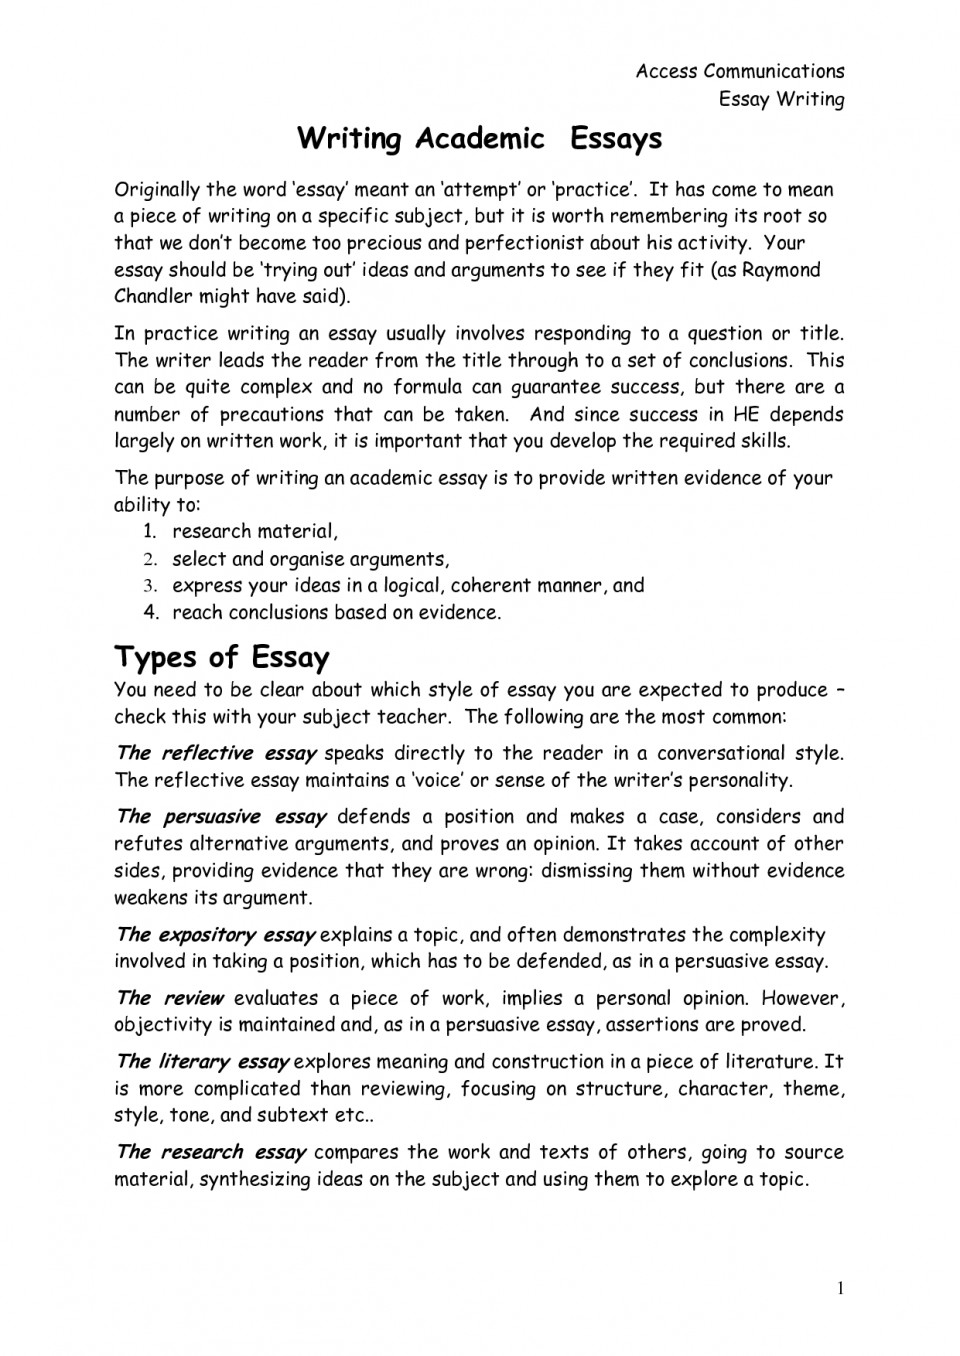 016 Reflective Essay On Academic Writings Beautiful Examples Sample Pdf About Writing English 101 960